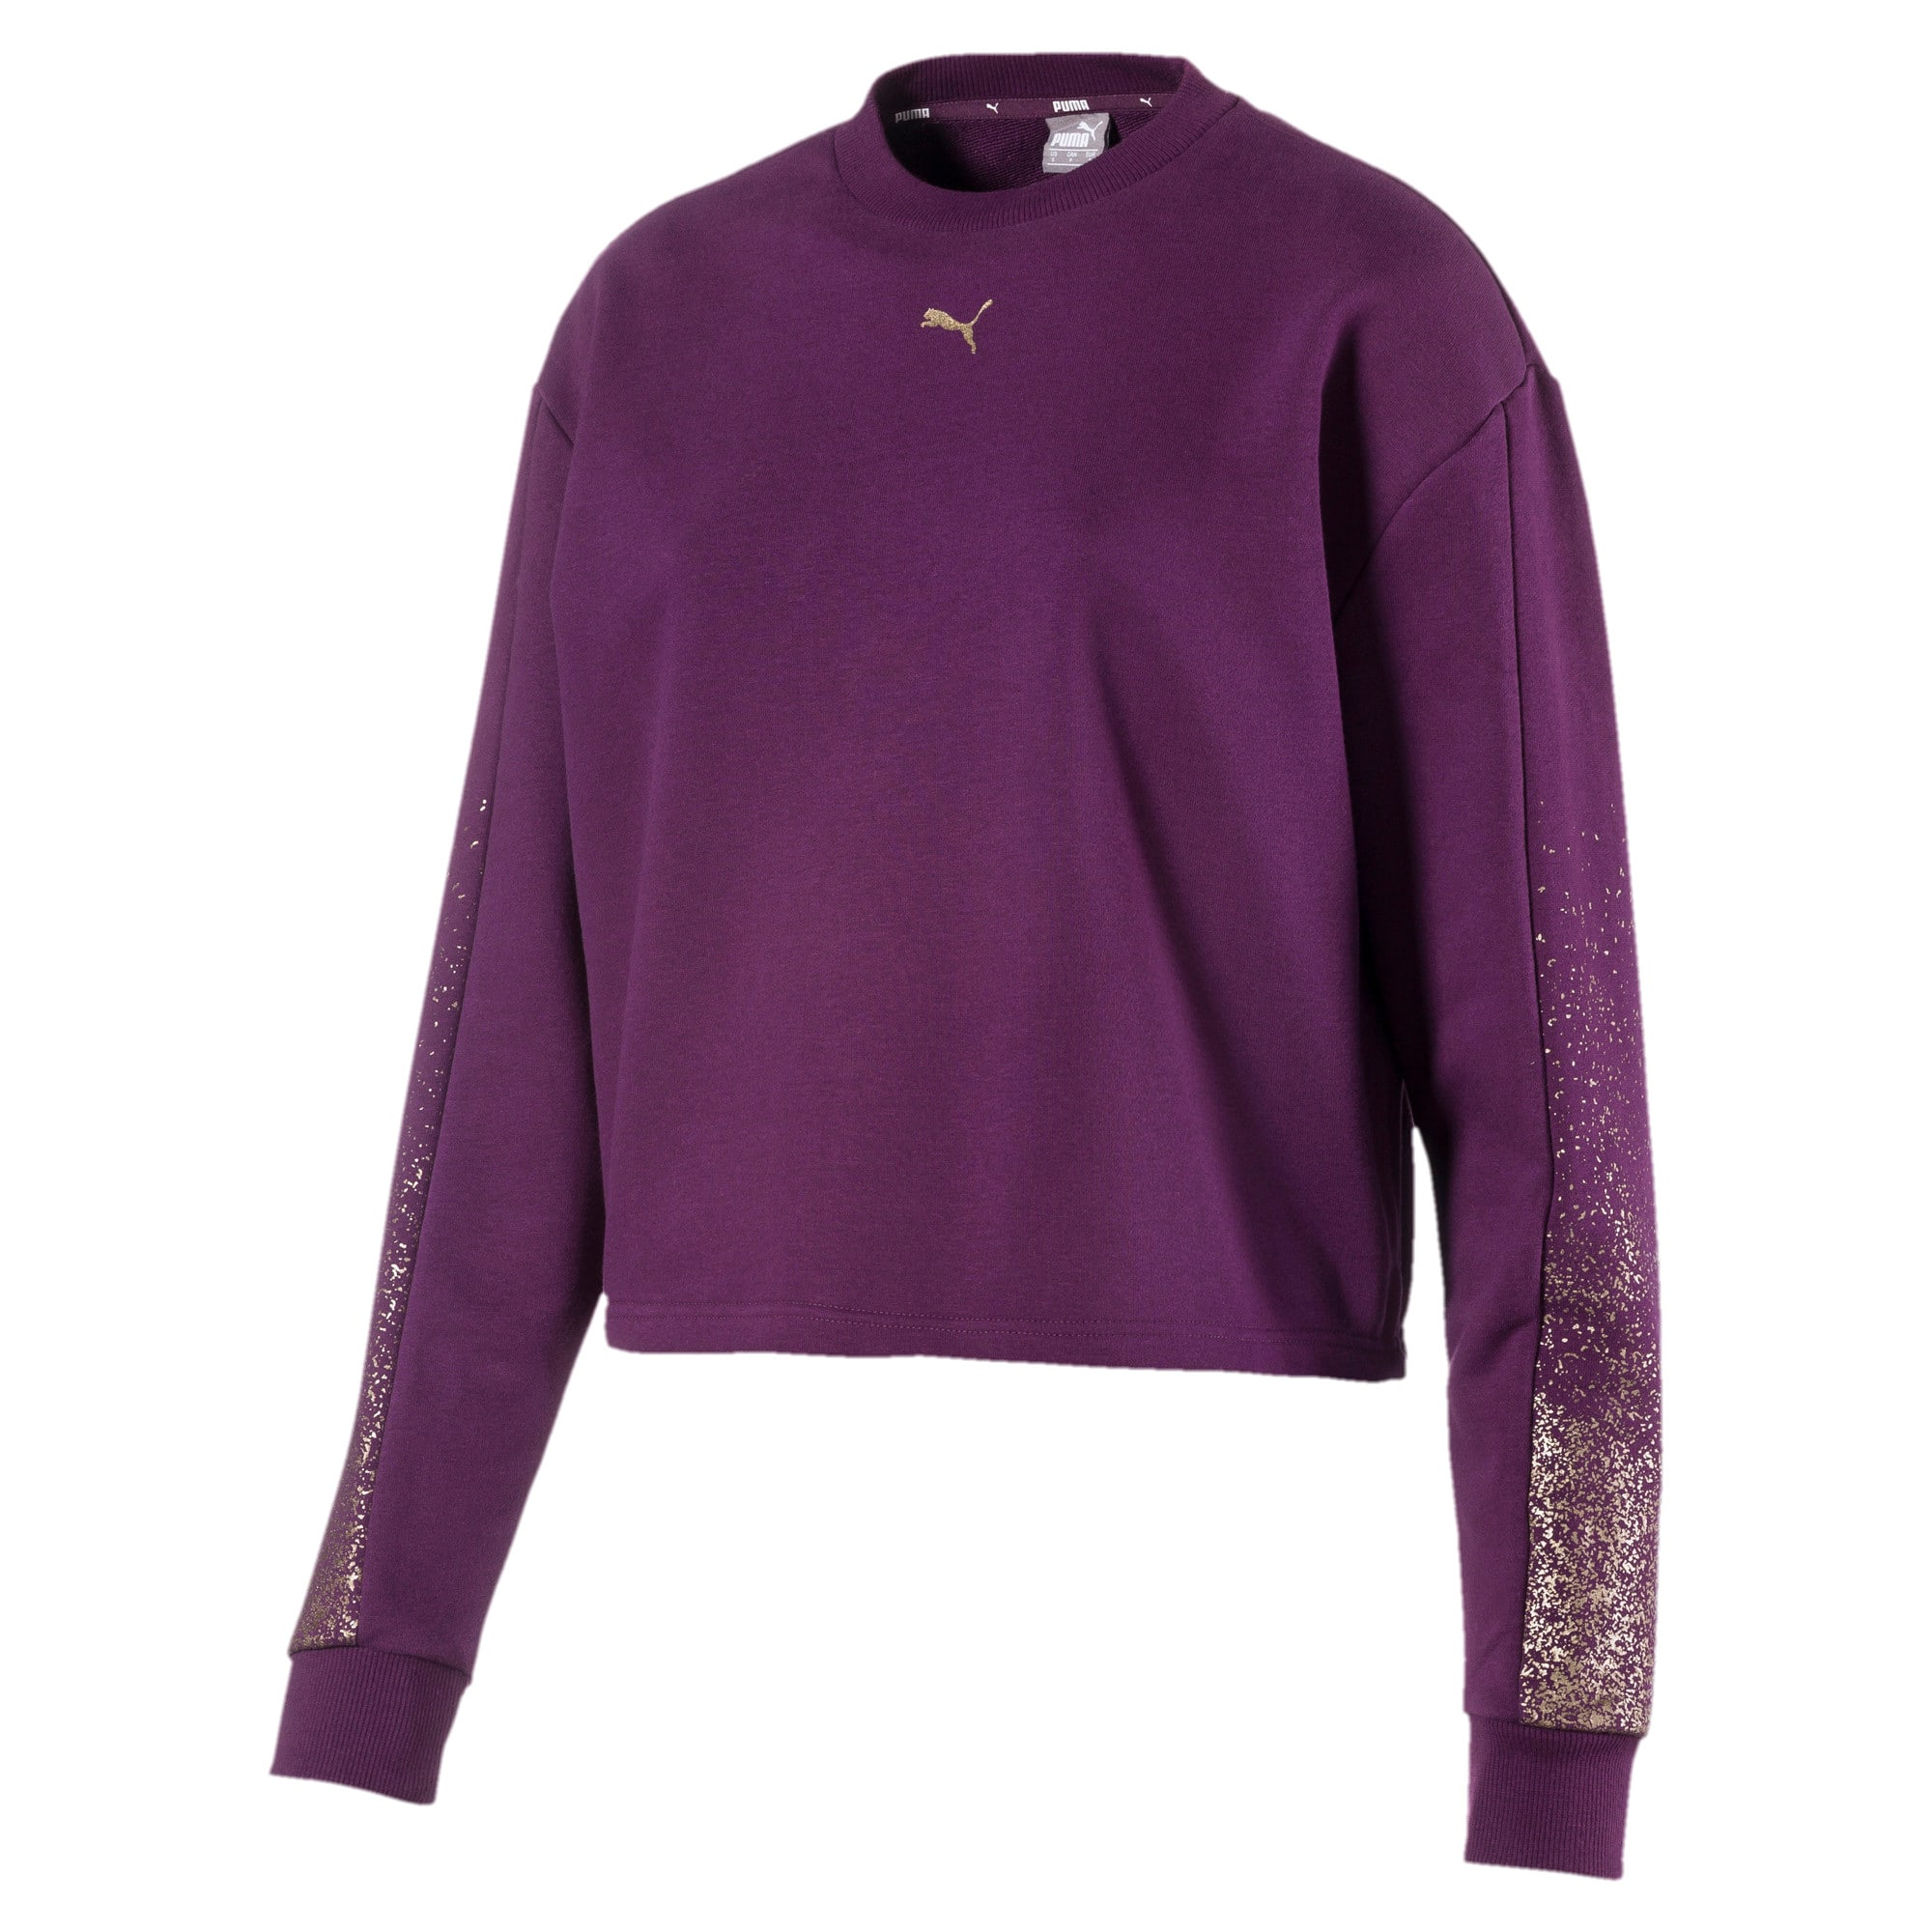 Thumbnail 1 of Holiday Pack Graphic Long Sleeve Women's Pullover, Plum Purple, medium-IND